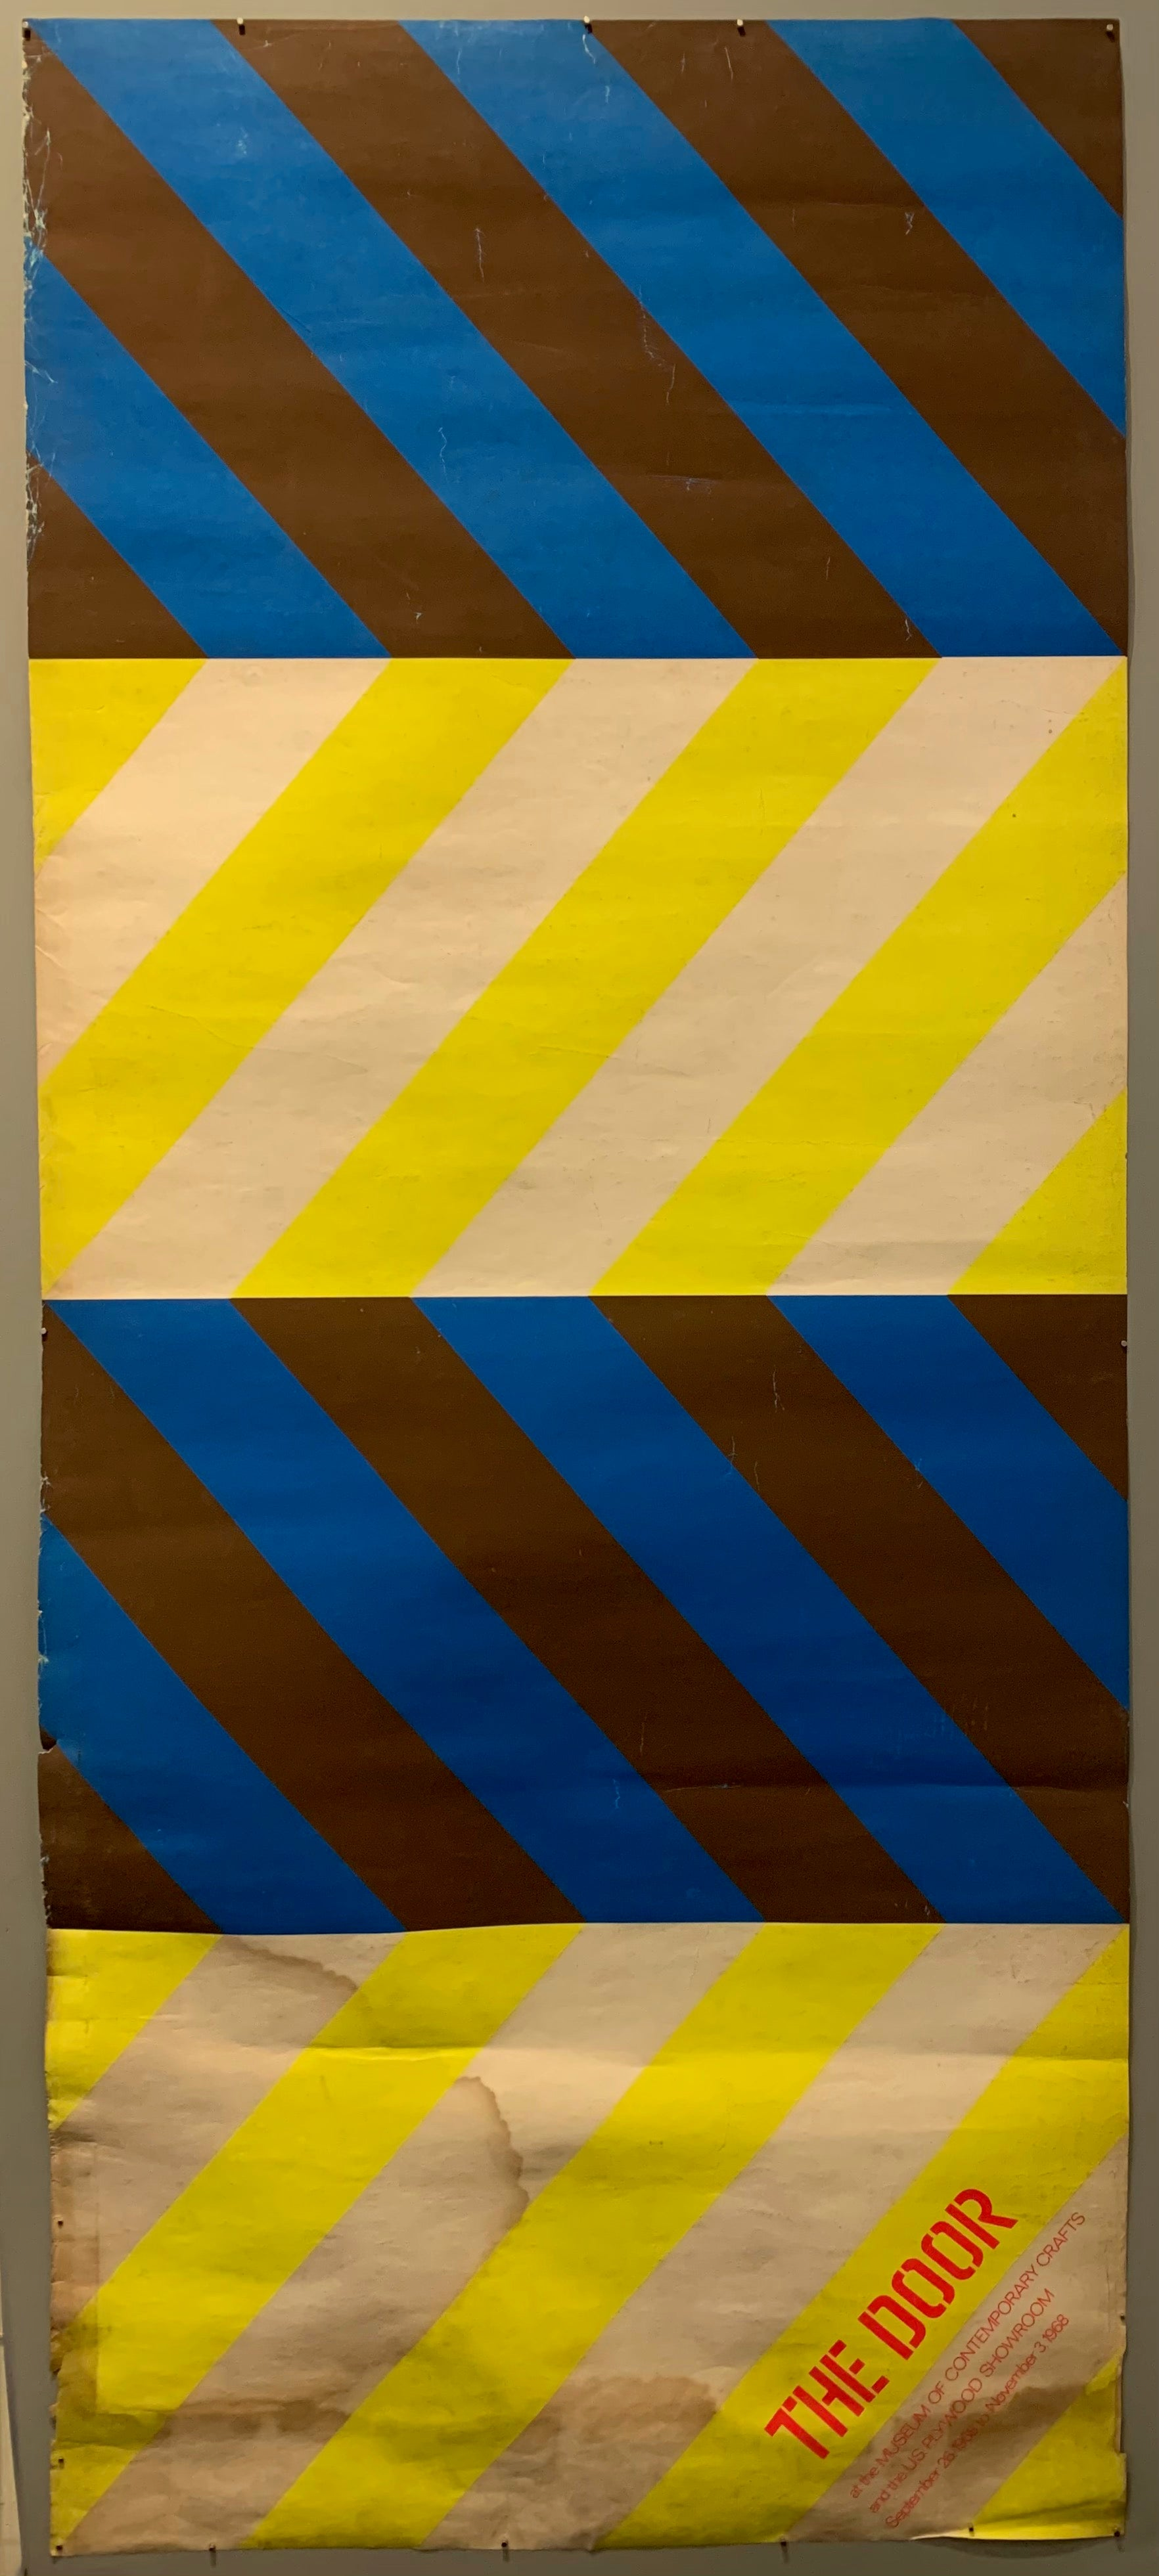 This mix of multicolored diagonals is eye-catching and bold and creates a chevron print. The main colors are yellow and white and black and blue.